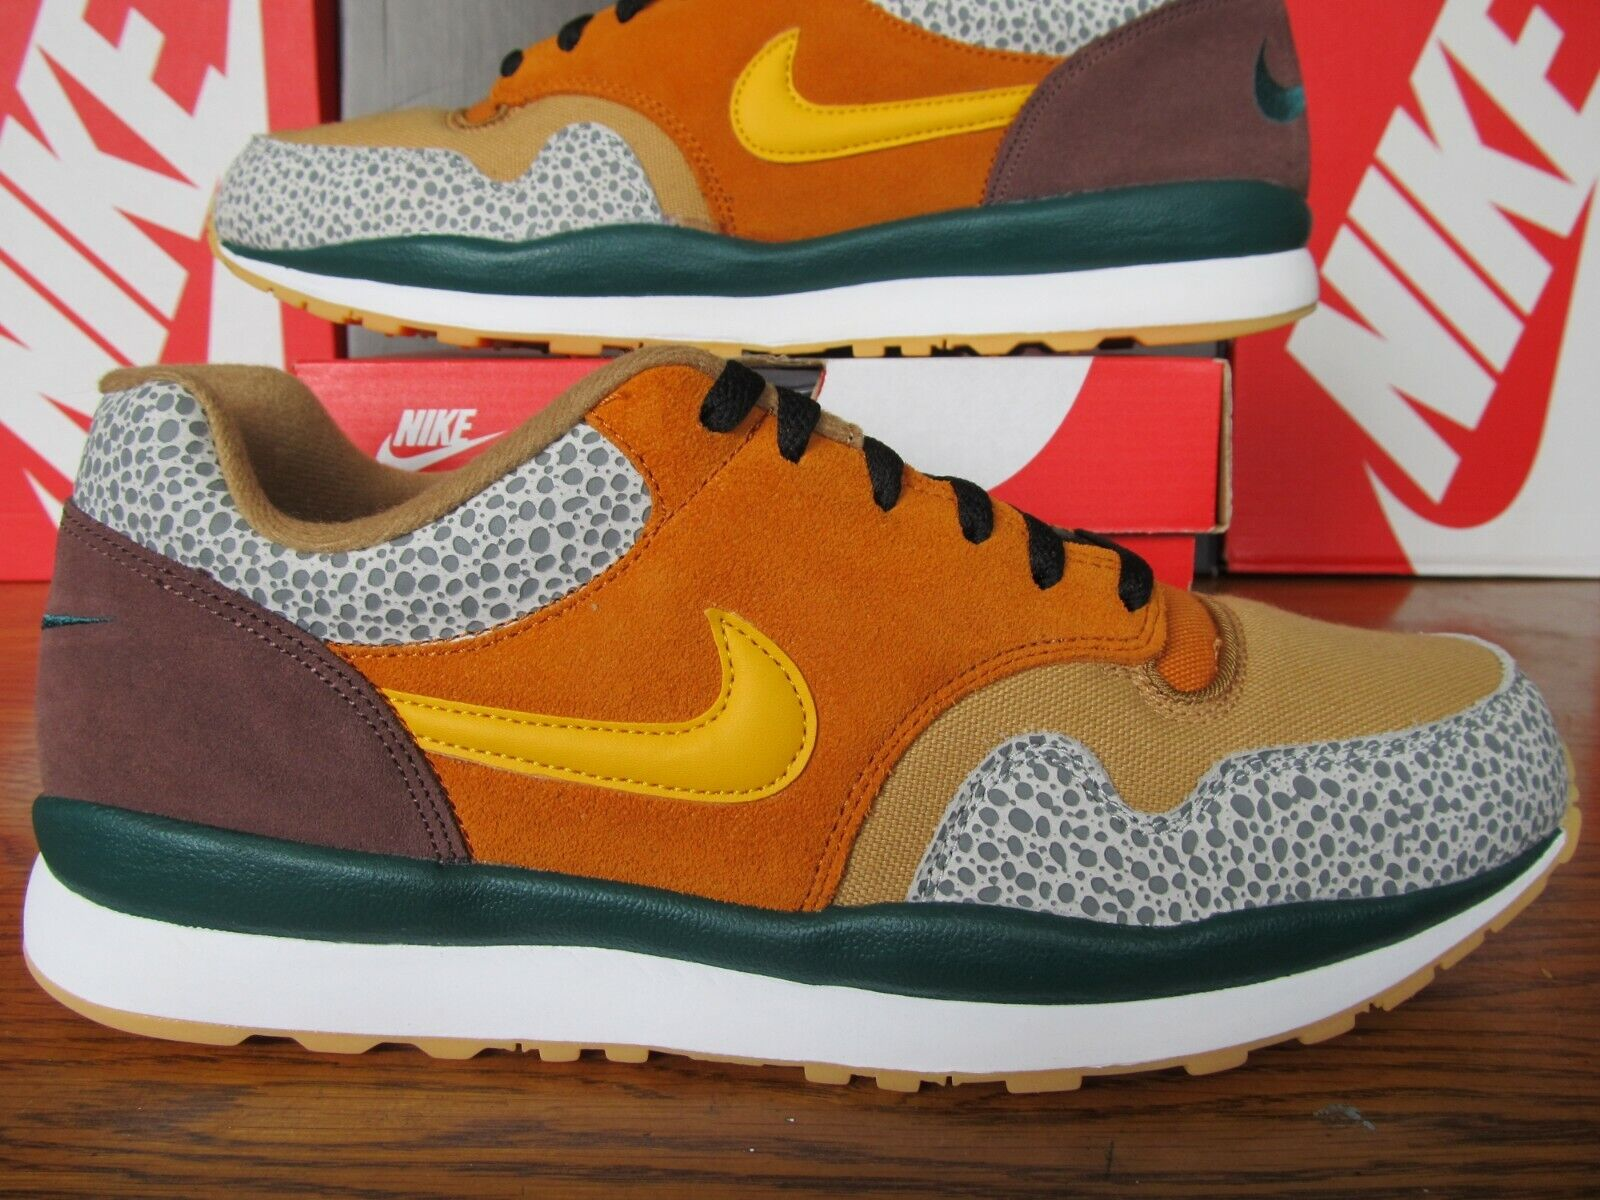 DS Nike Air Safari SE Monarch Yellow Ochre Flax Mahogany Mink 12 AO3298 800 90 1